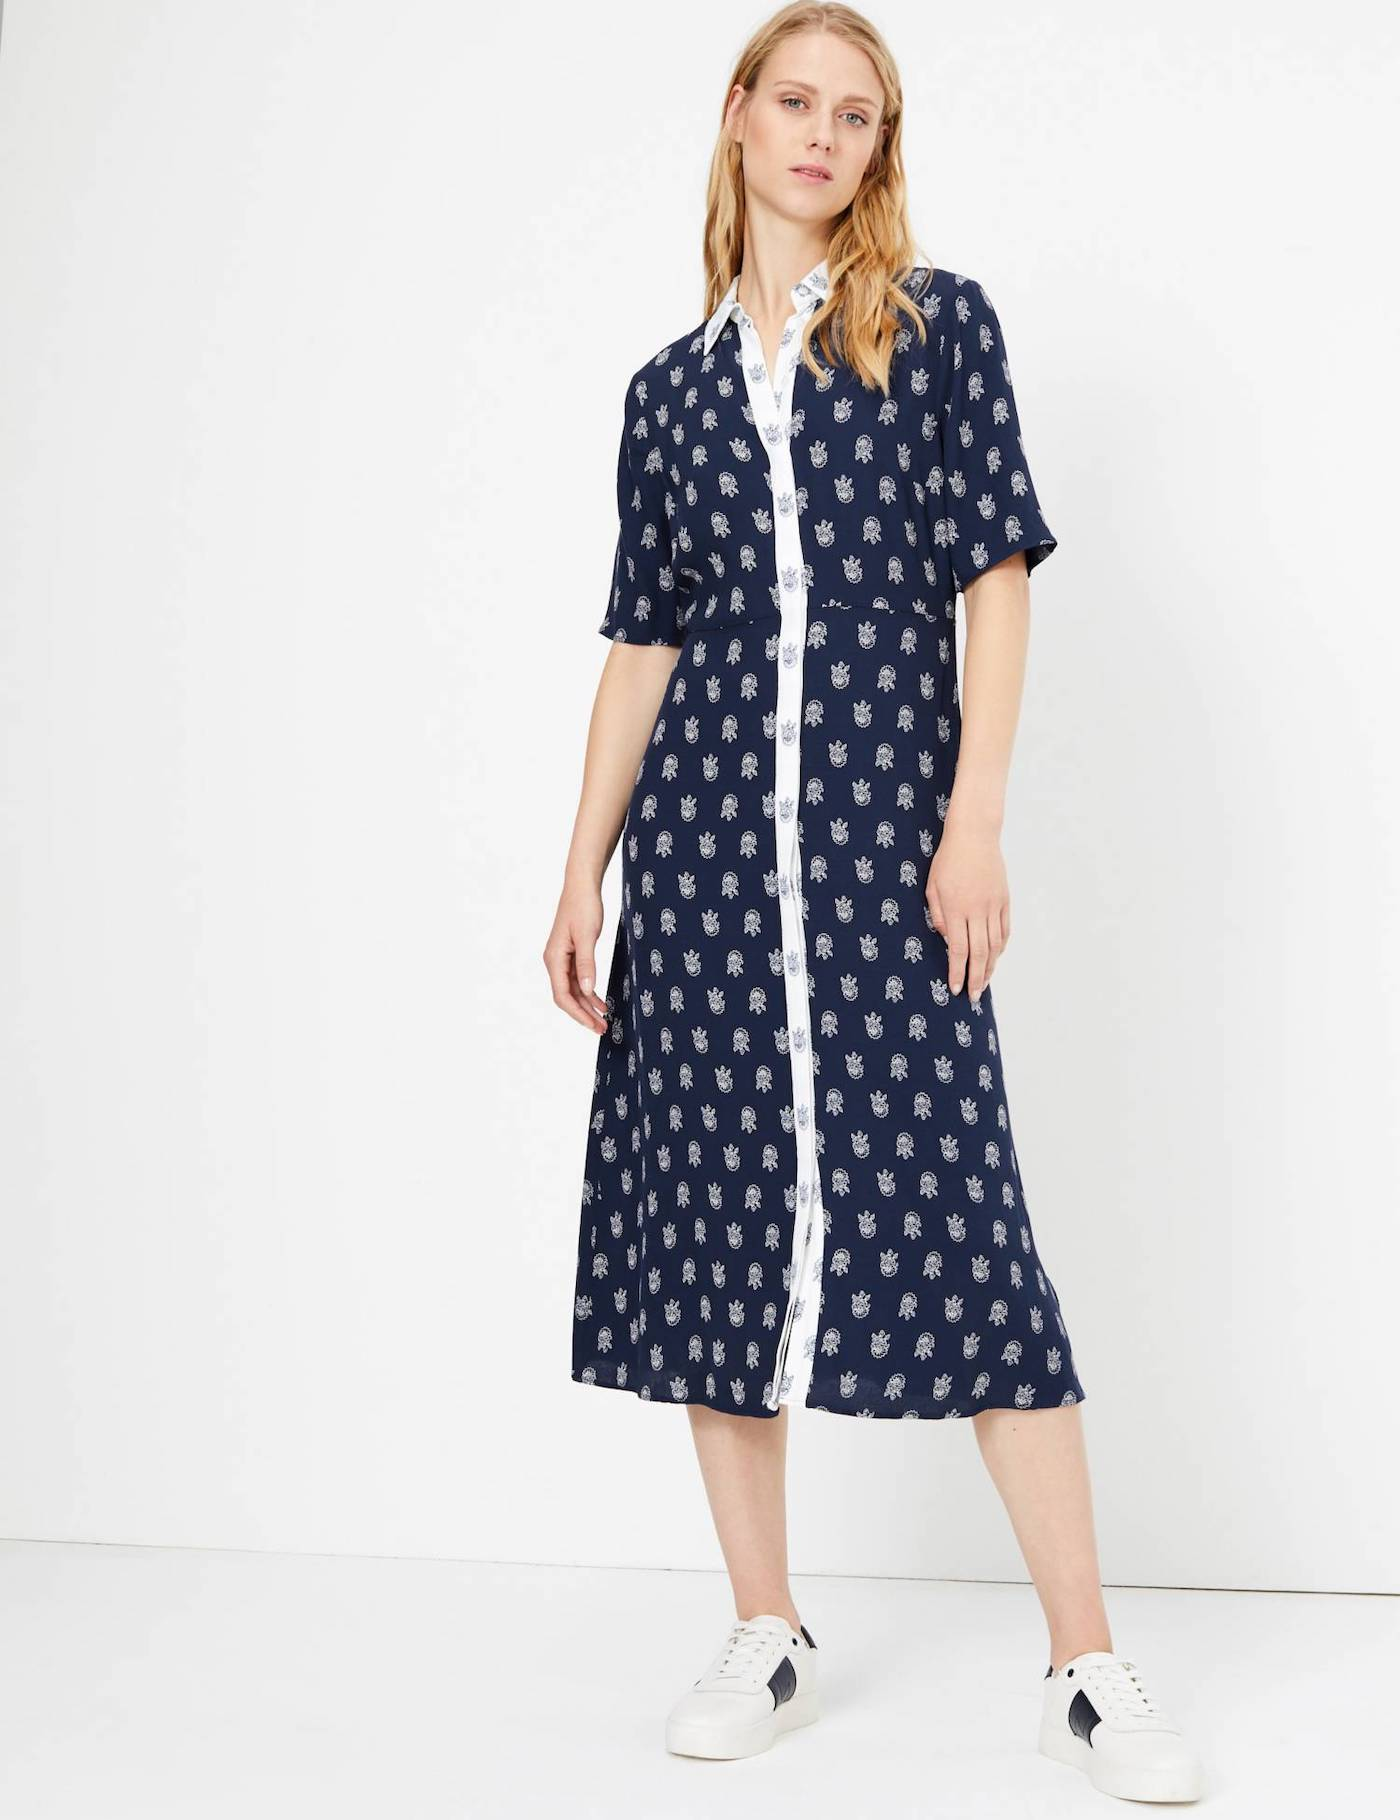 M&S Foulard Printed Midi Shirt Dress.jpg